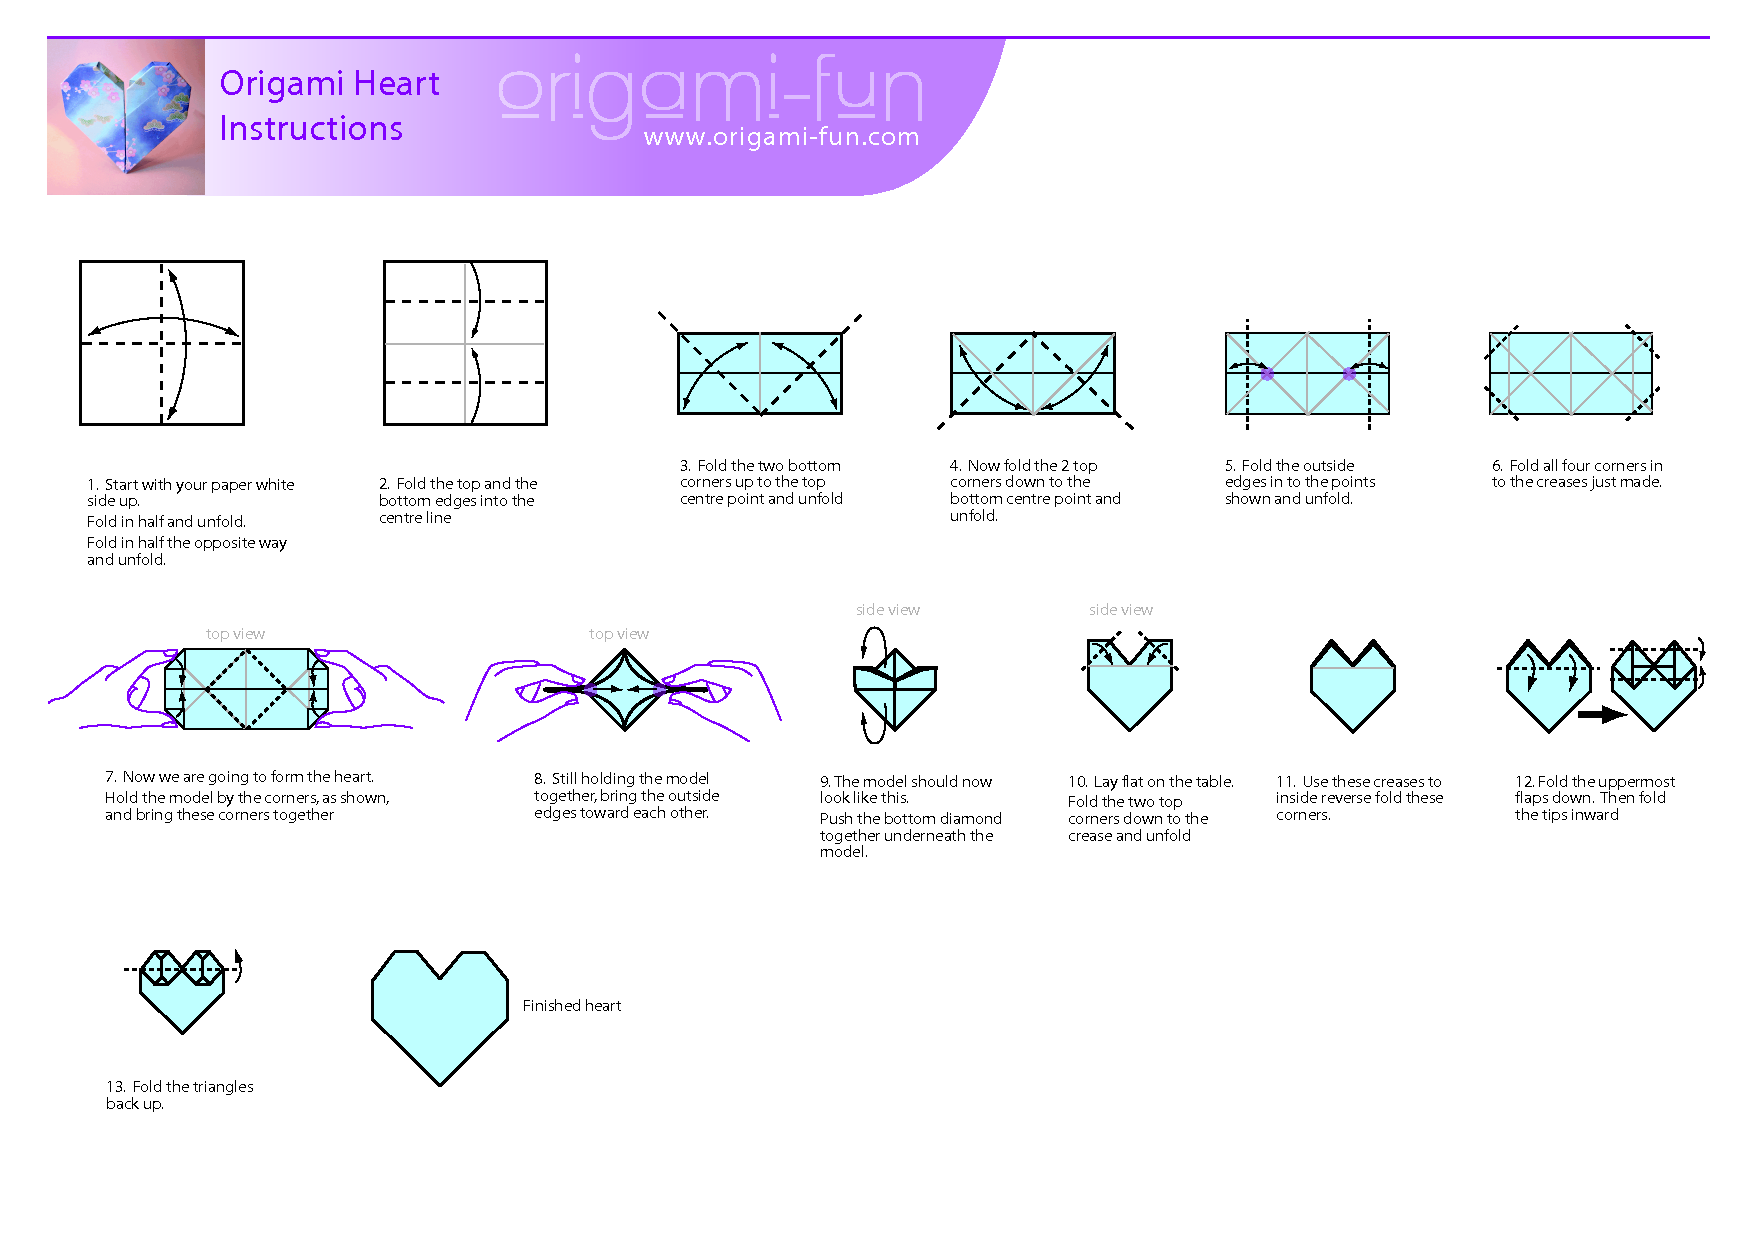 3d origami heart folding instructions | askervani.com ... - photo#23